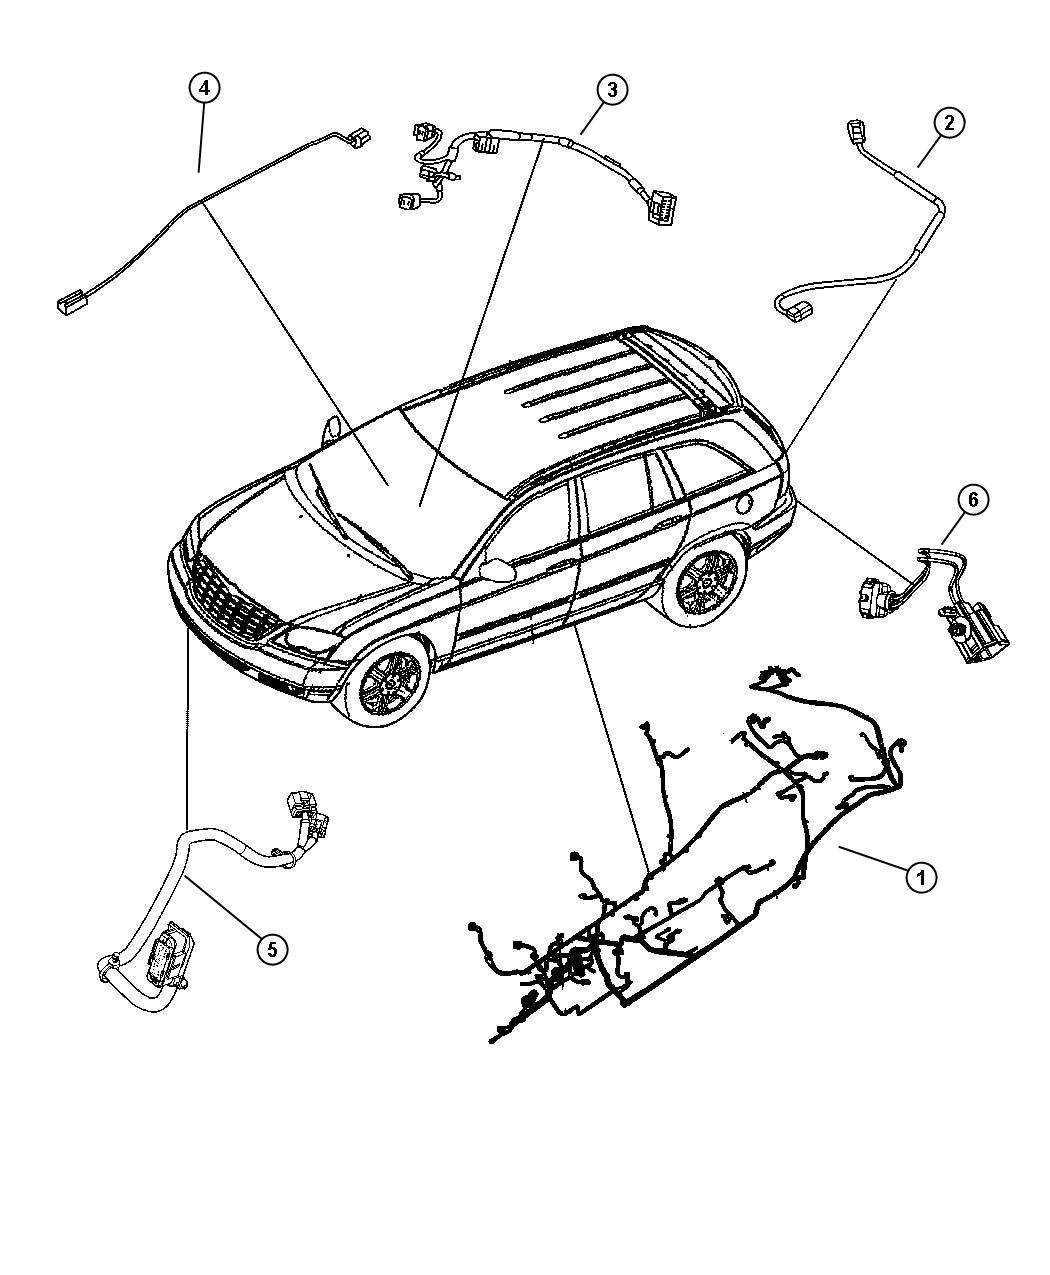 Chrysler Pacifica Wiring. Unified body. [supp. Side